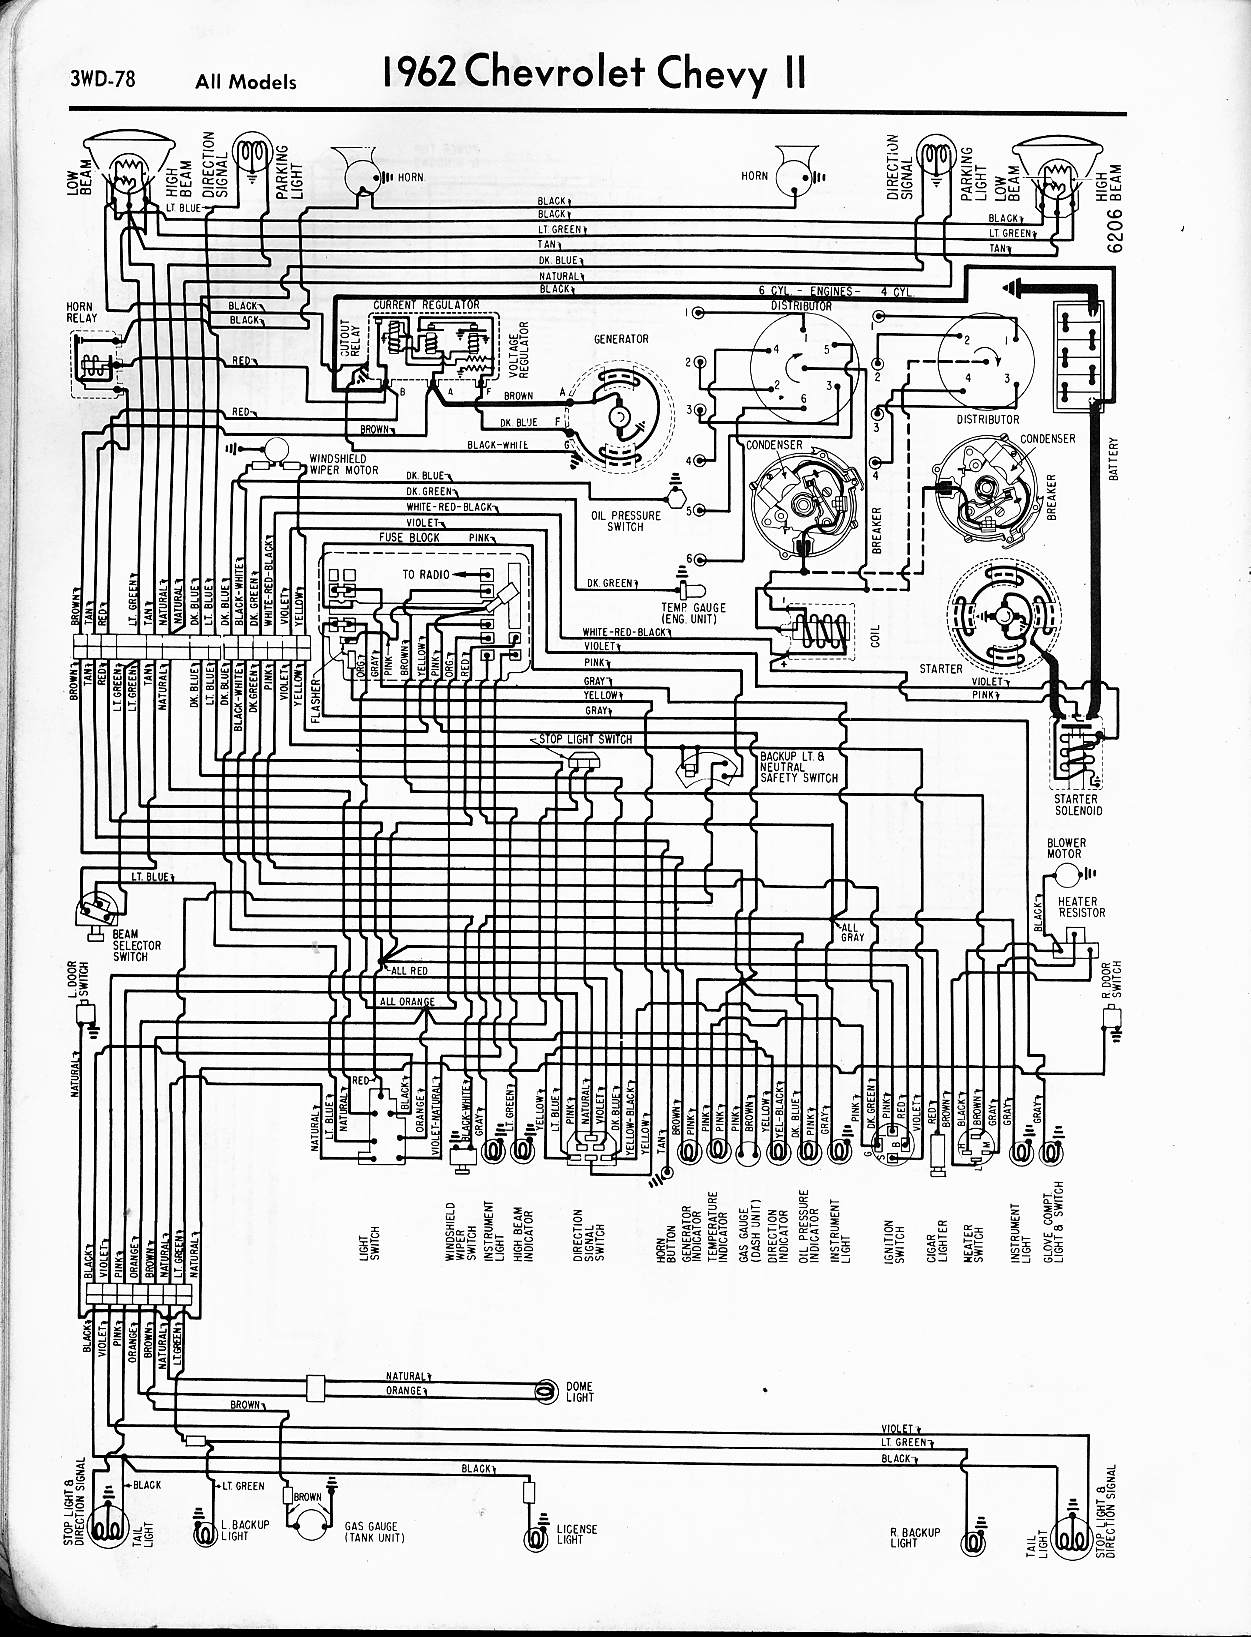 MWireChev62_3WD 078 57 65 chevy wiring diagrams 1962 chevy truck wiring diagram at readyjetset.co